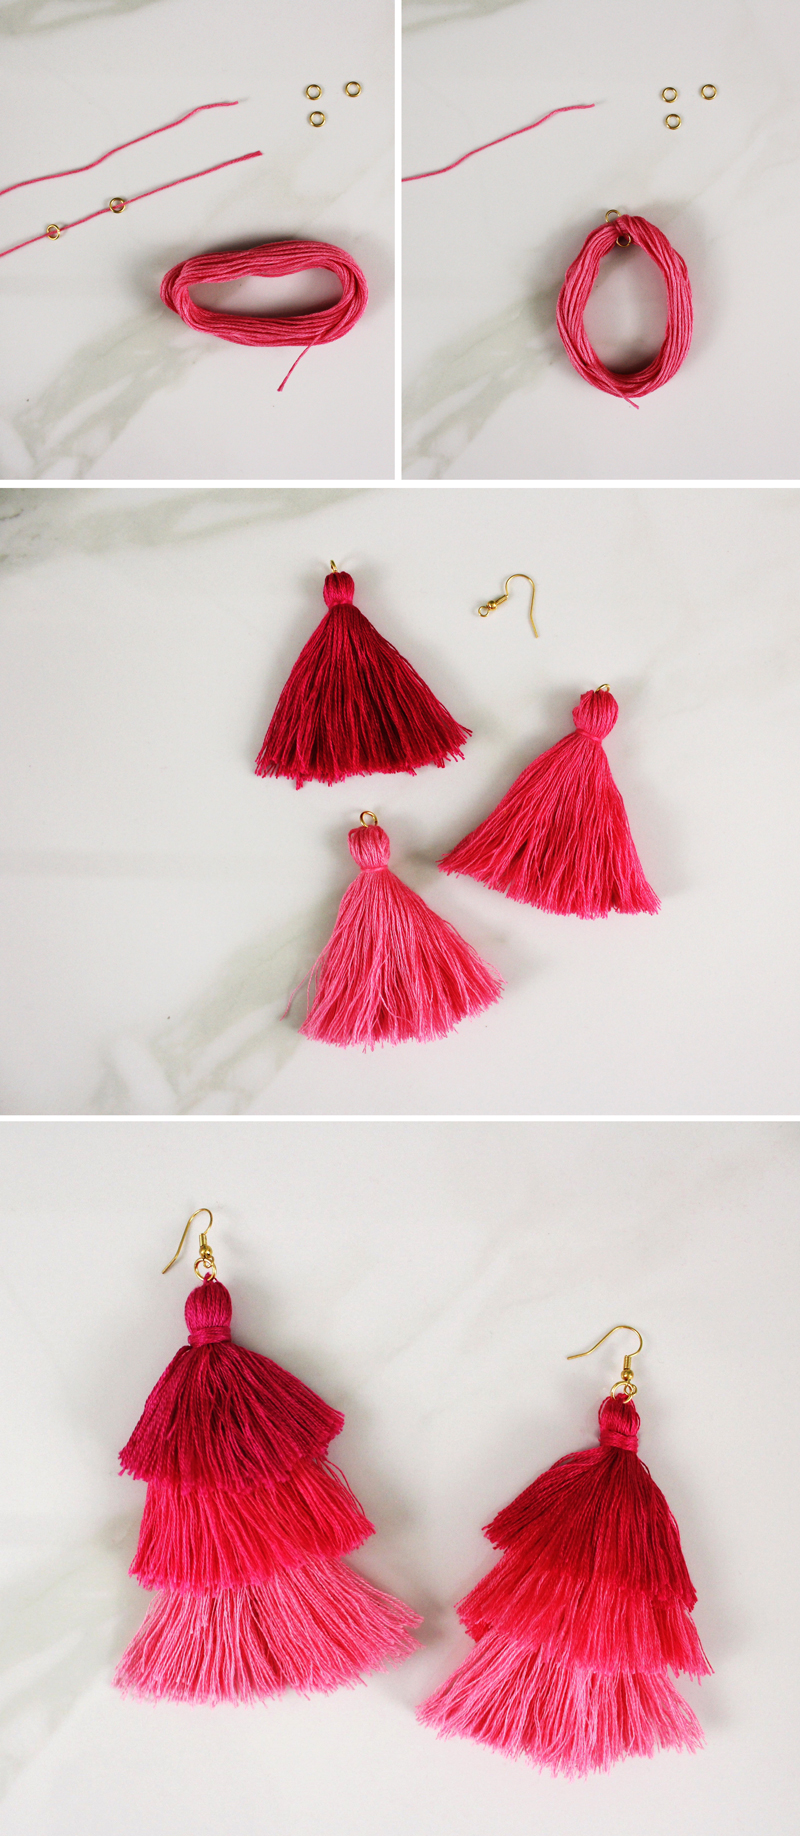 DIY tassel earrings step by step instructions